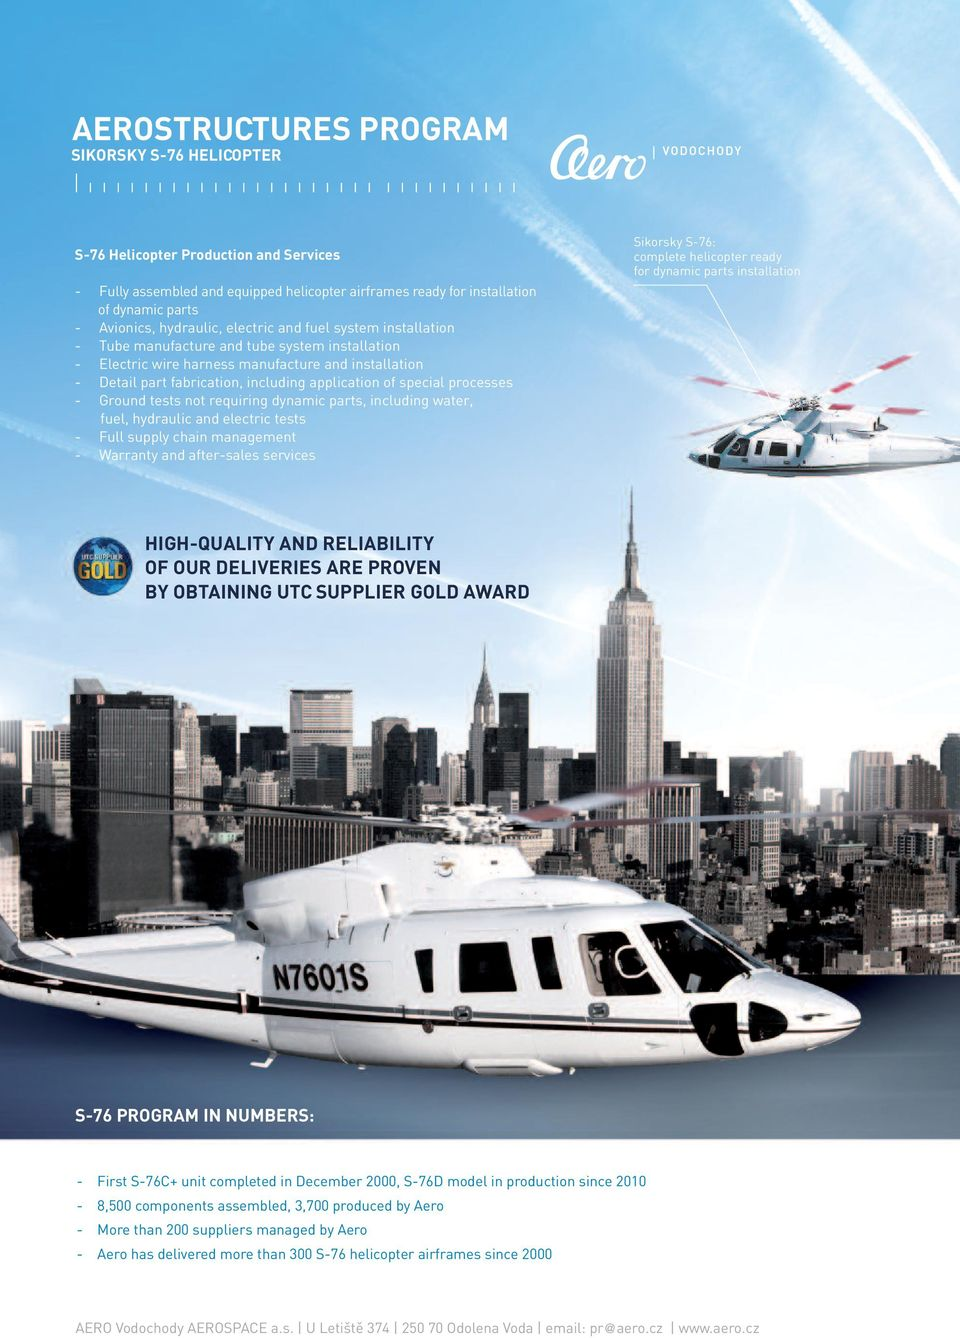 tests not requiring dynamic parts, including water, fuel, hydraulic and electric tests - Full supply chain management - Warranty and after-sales services Sikorsky S-76: complete helicopter ready for